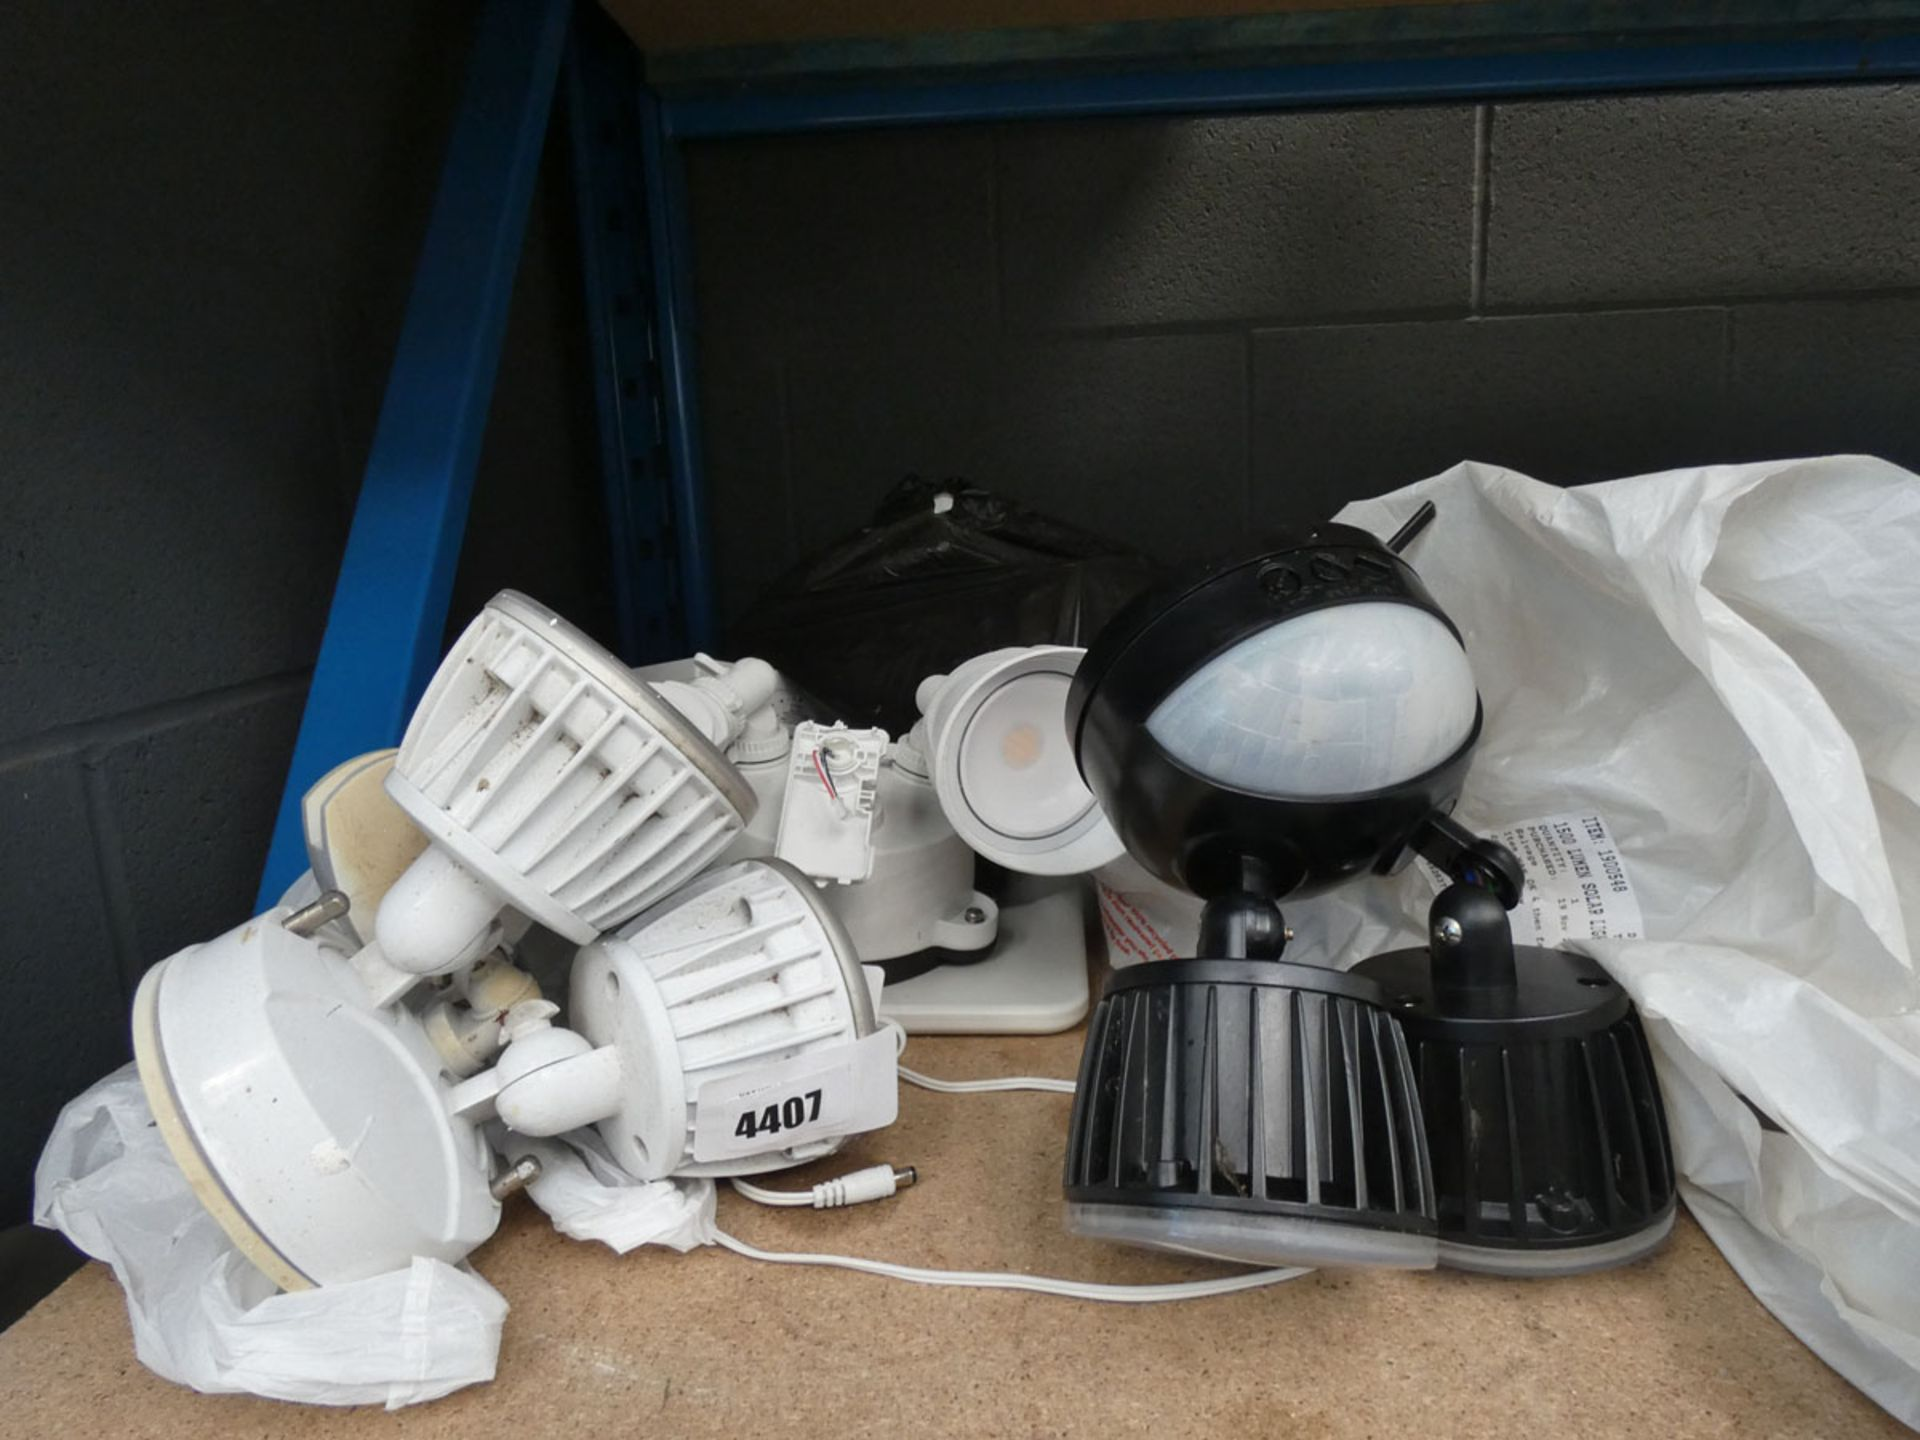 4708 - Quantity of loose security lights